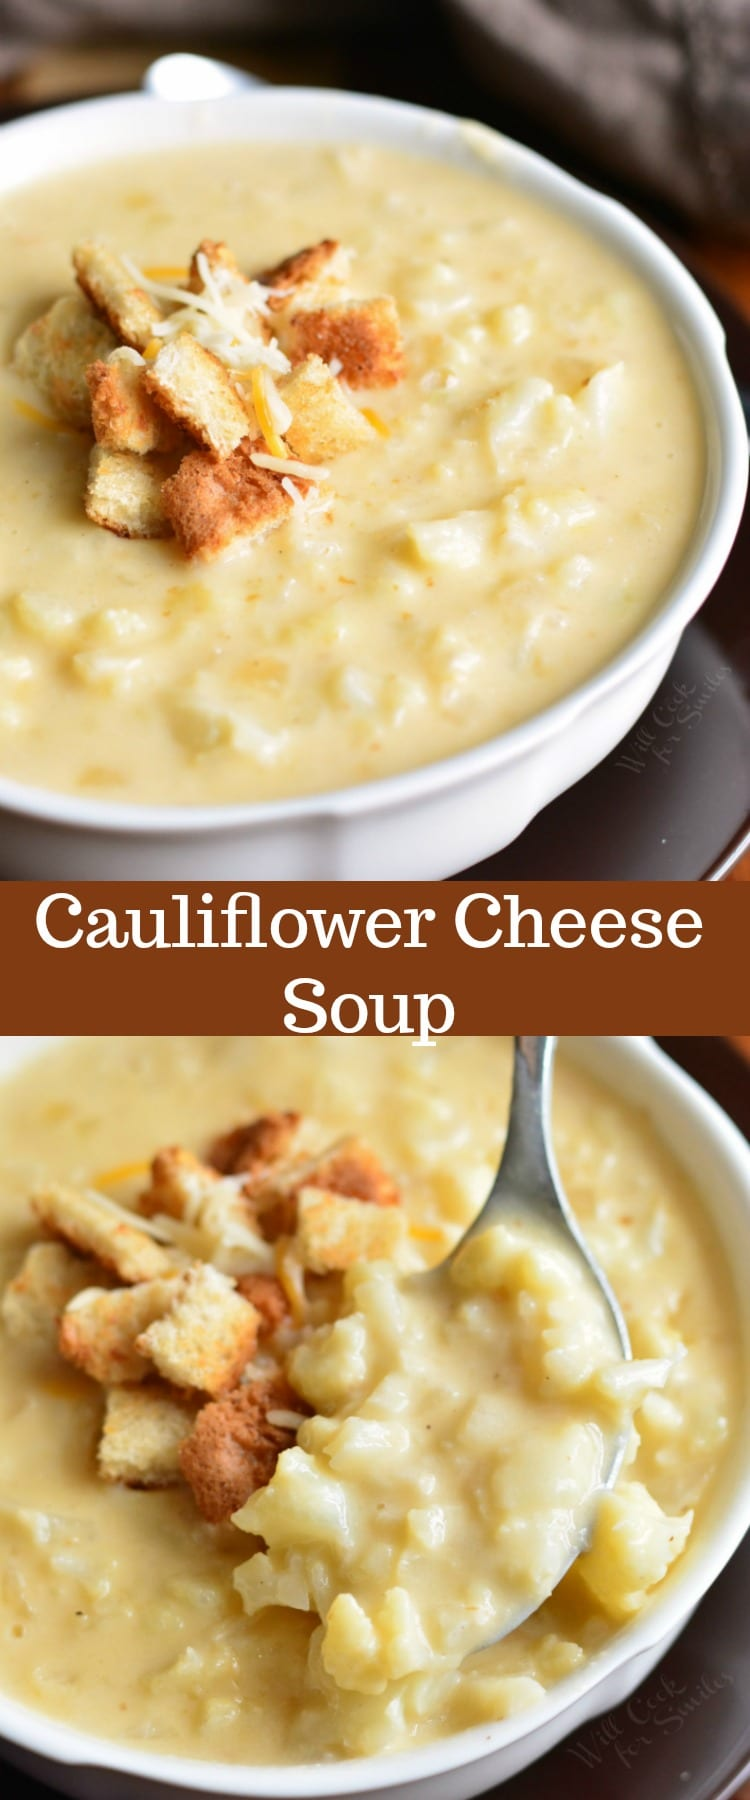 Cauliflower Cheese Soup. This simple cauliflower cheese soup recipe takes only about 40 minutes to make and you will be enjoying this cheesy, creamy, hearty soup. #soup #cauliflower #cheesy #homemade #easy #comfortfood